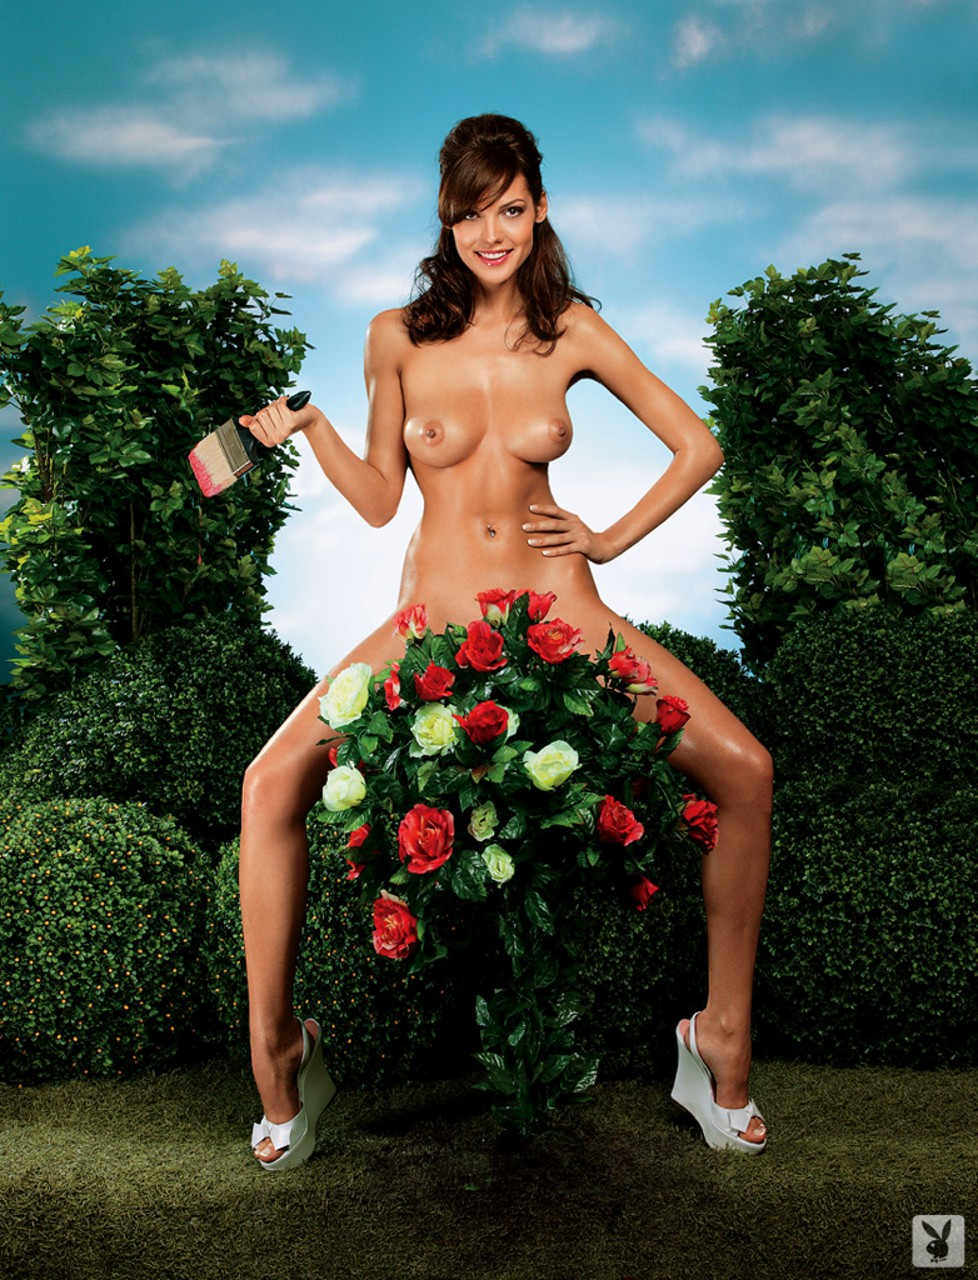 Various females take off their clothes and striking sexy poses for Playboy